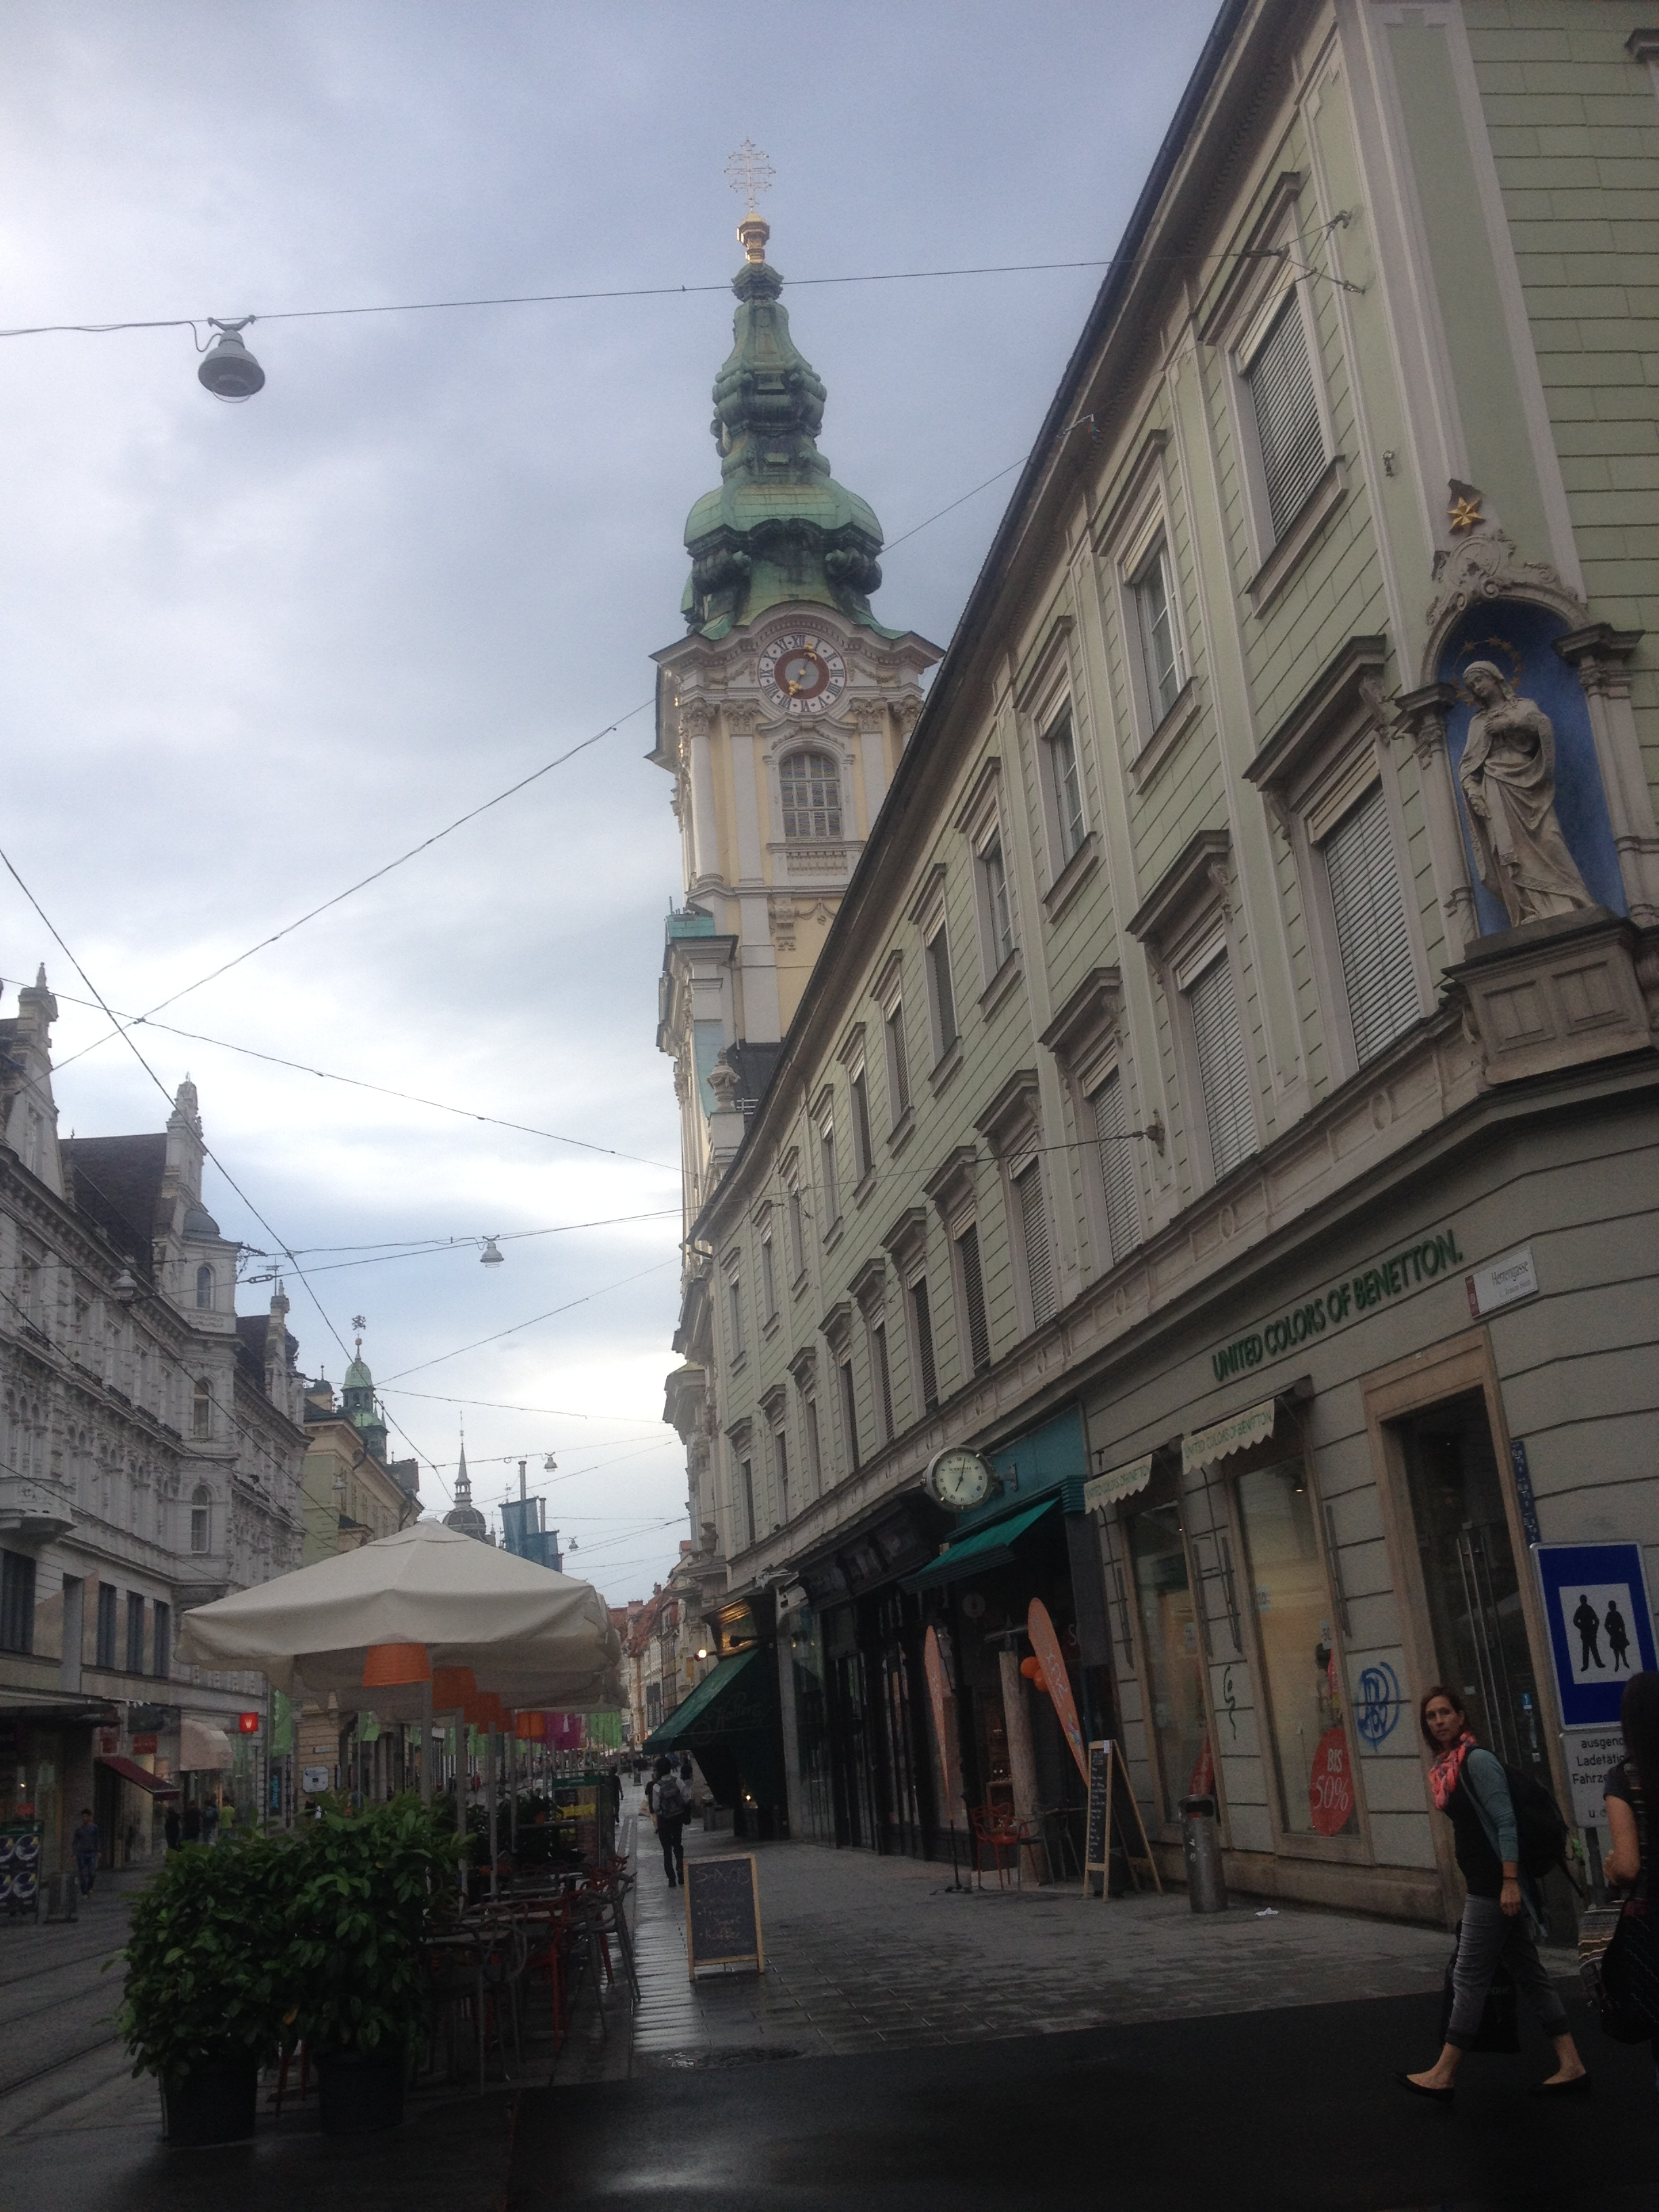 Walking down Herrengasse into the Hauptplatz